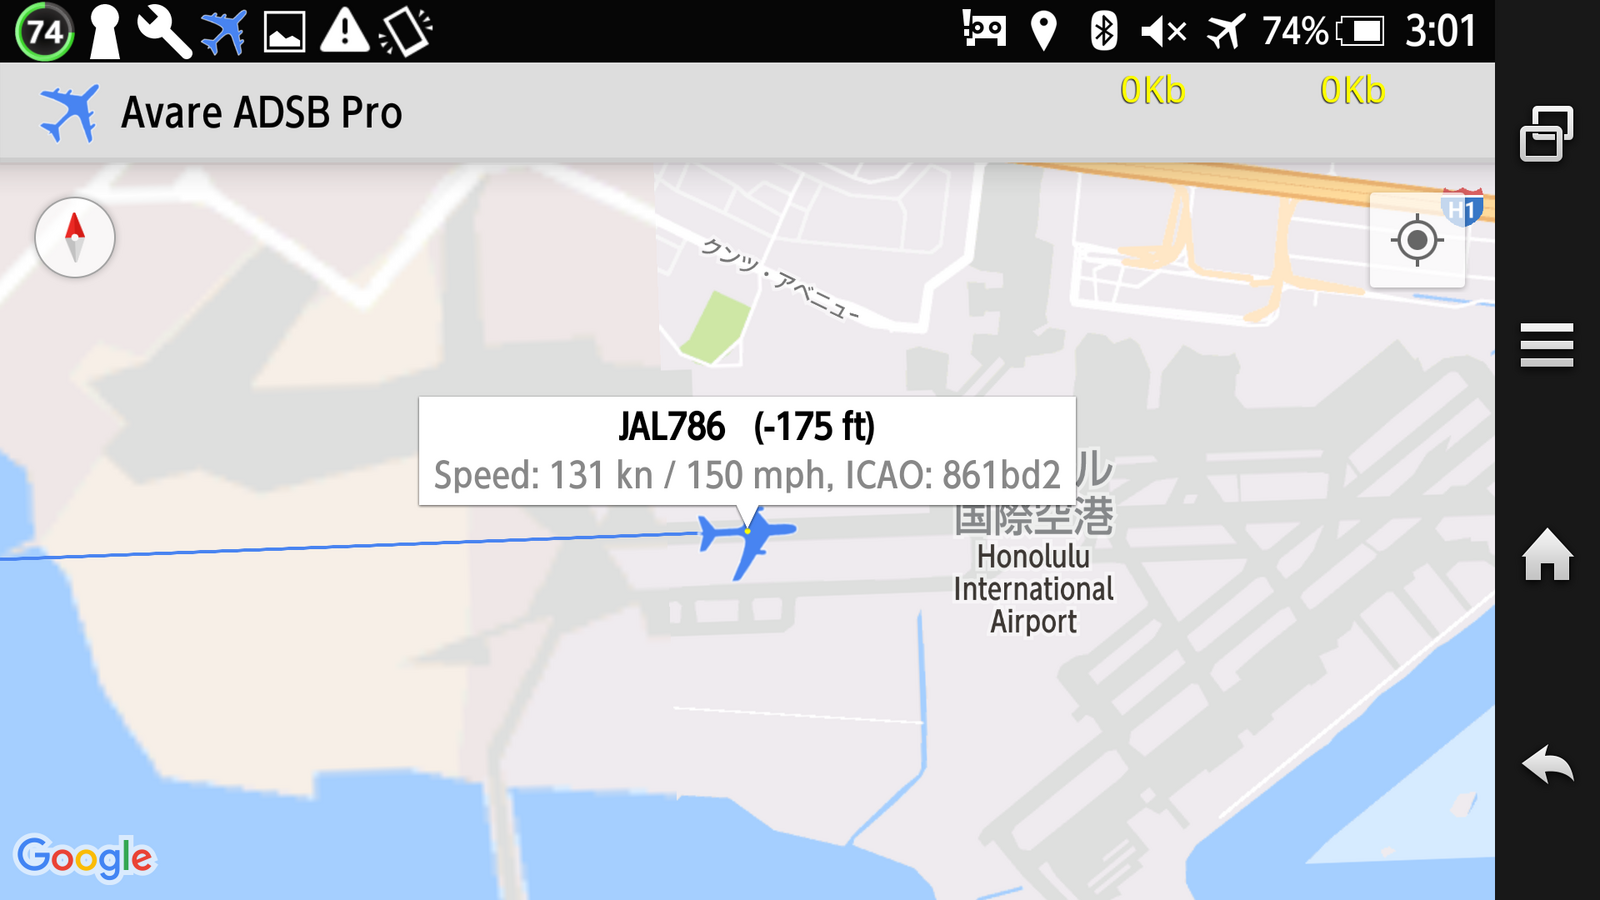 Jal786175ft